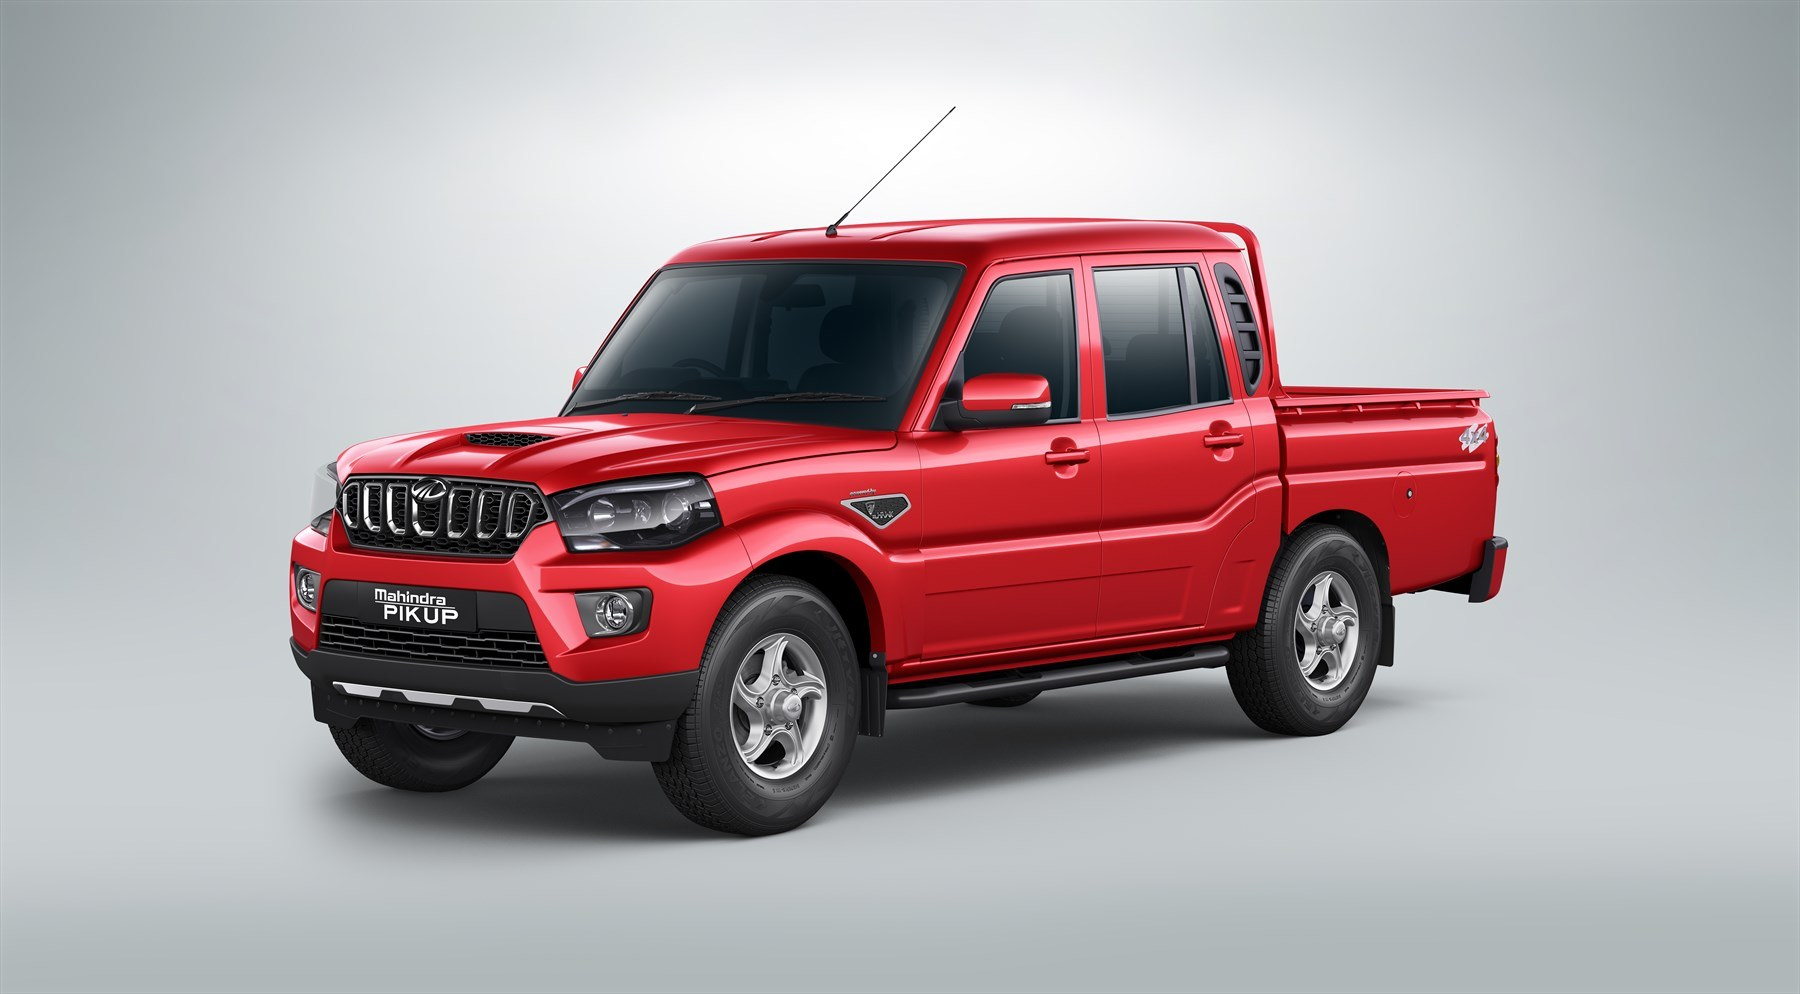 Mahindra Pik Up October 2020